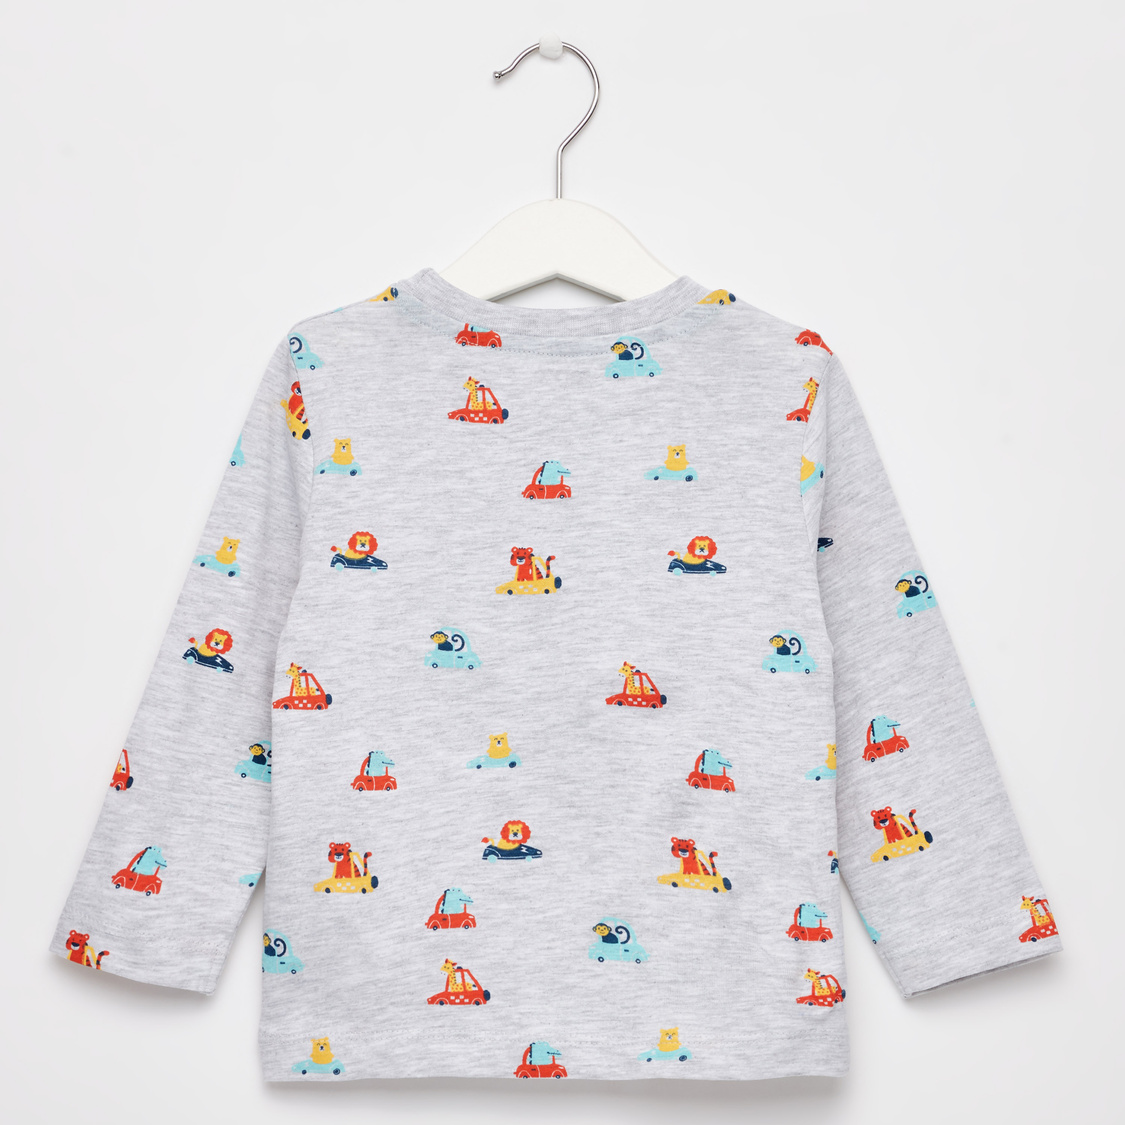 All-Over Printed T-shirt with Round Neck and Long Sleeves